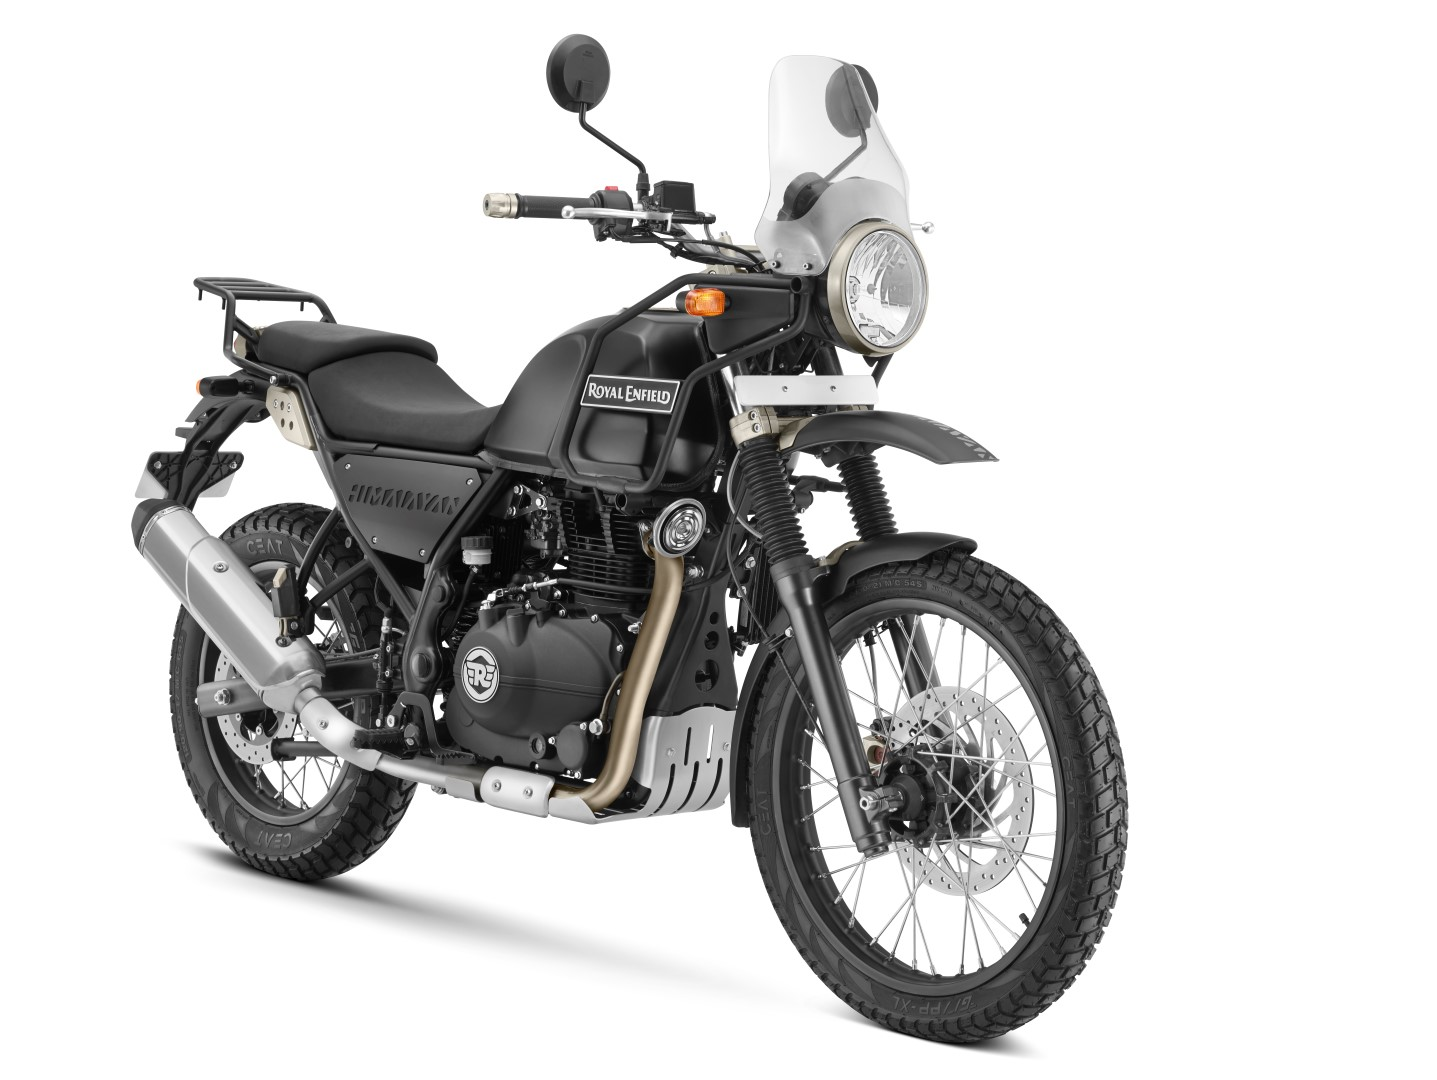 Royal Enfield Himalayan 410, fotos